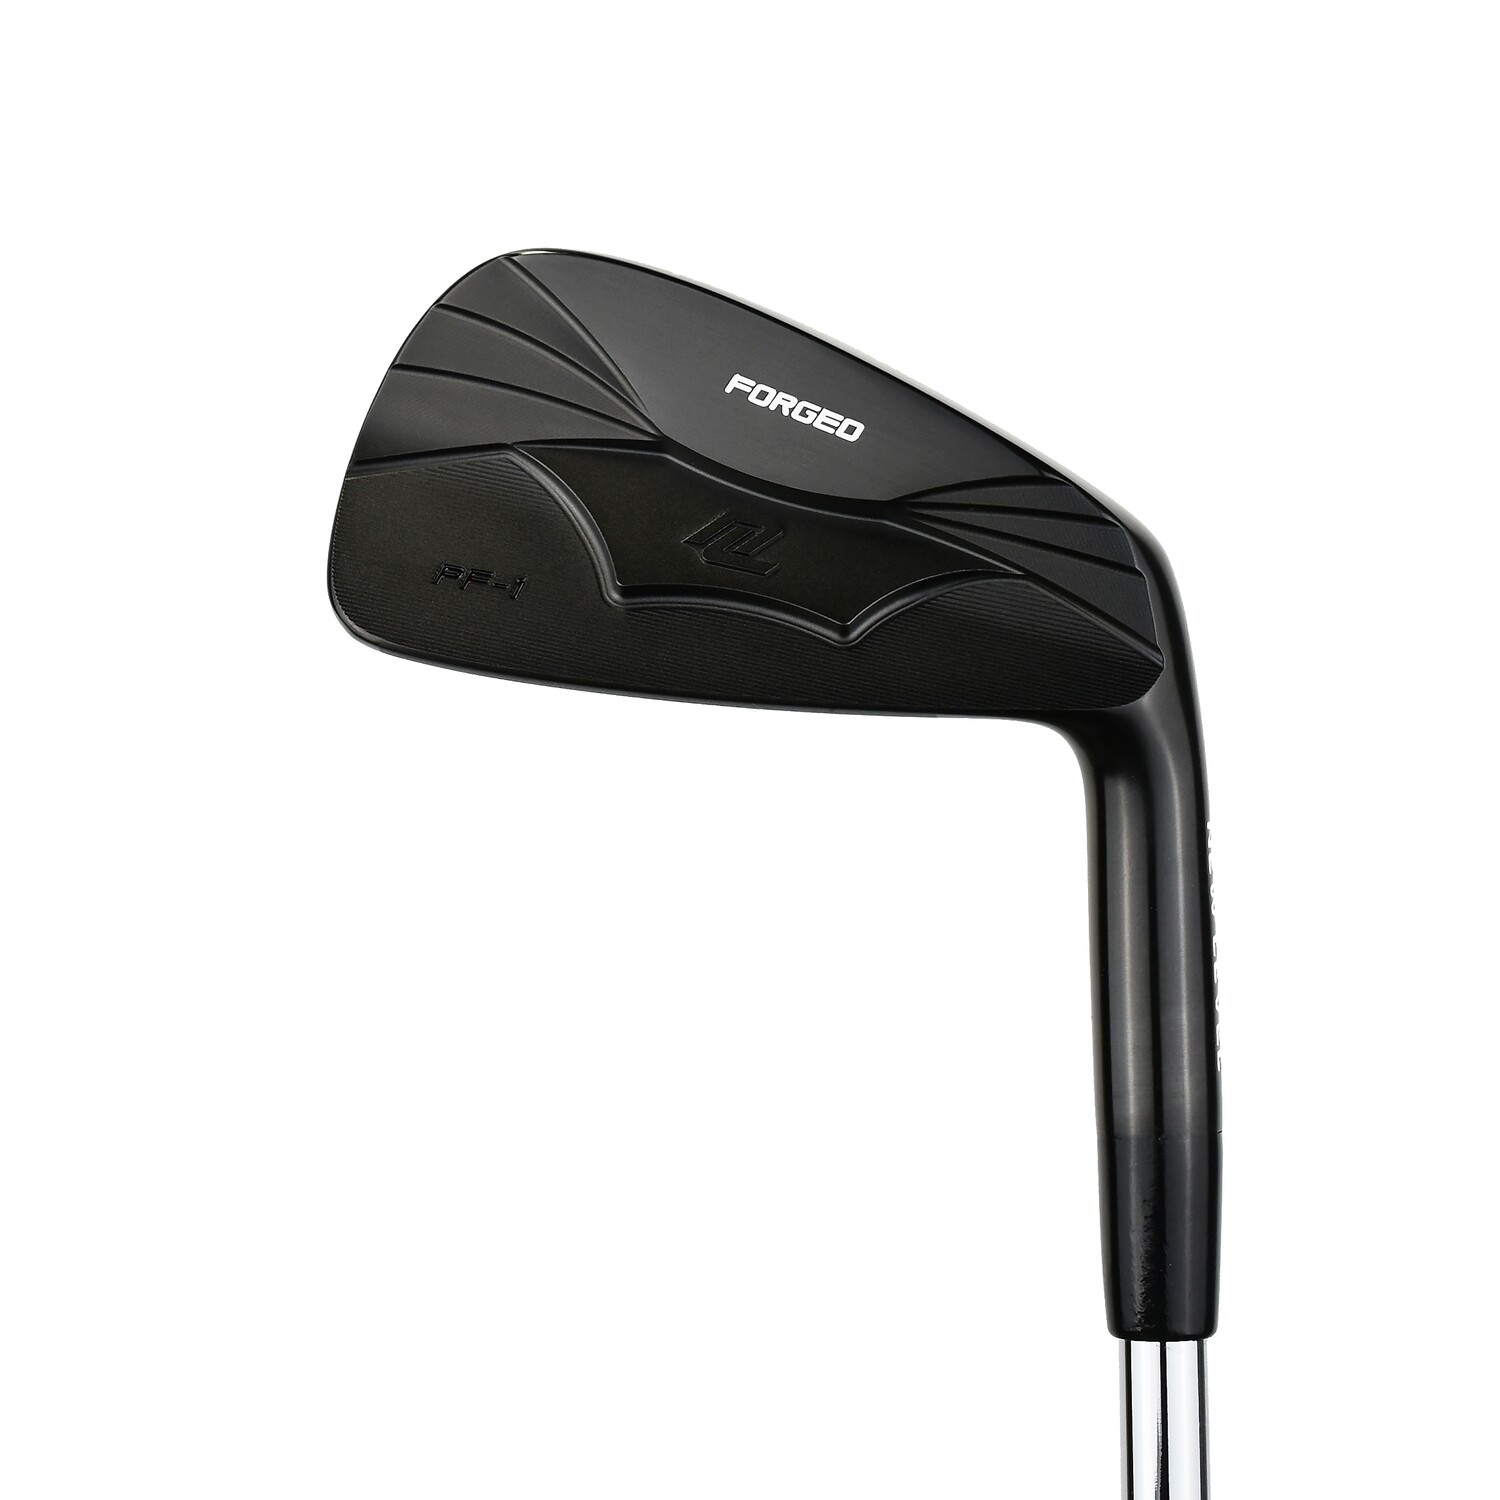 PF-1 Forged Black Limited Edition 4-PW